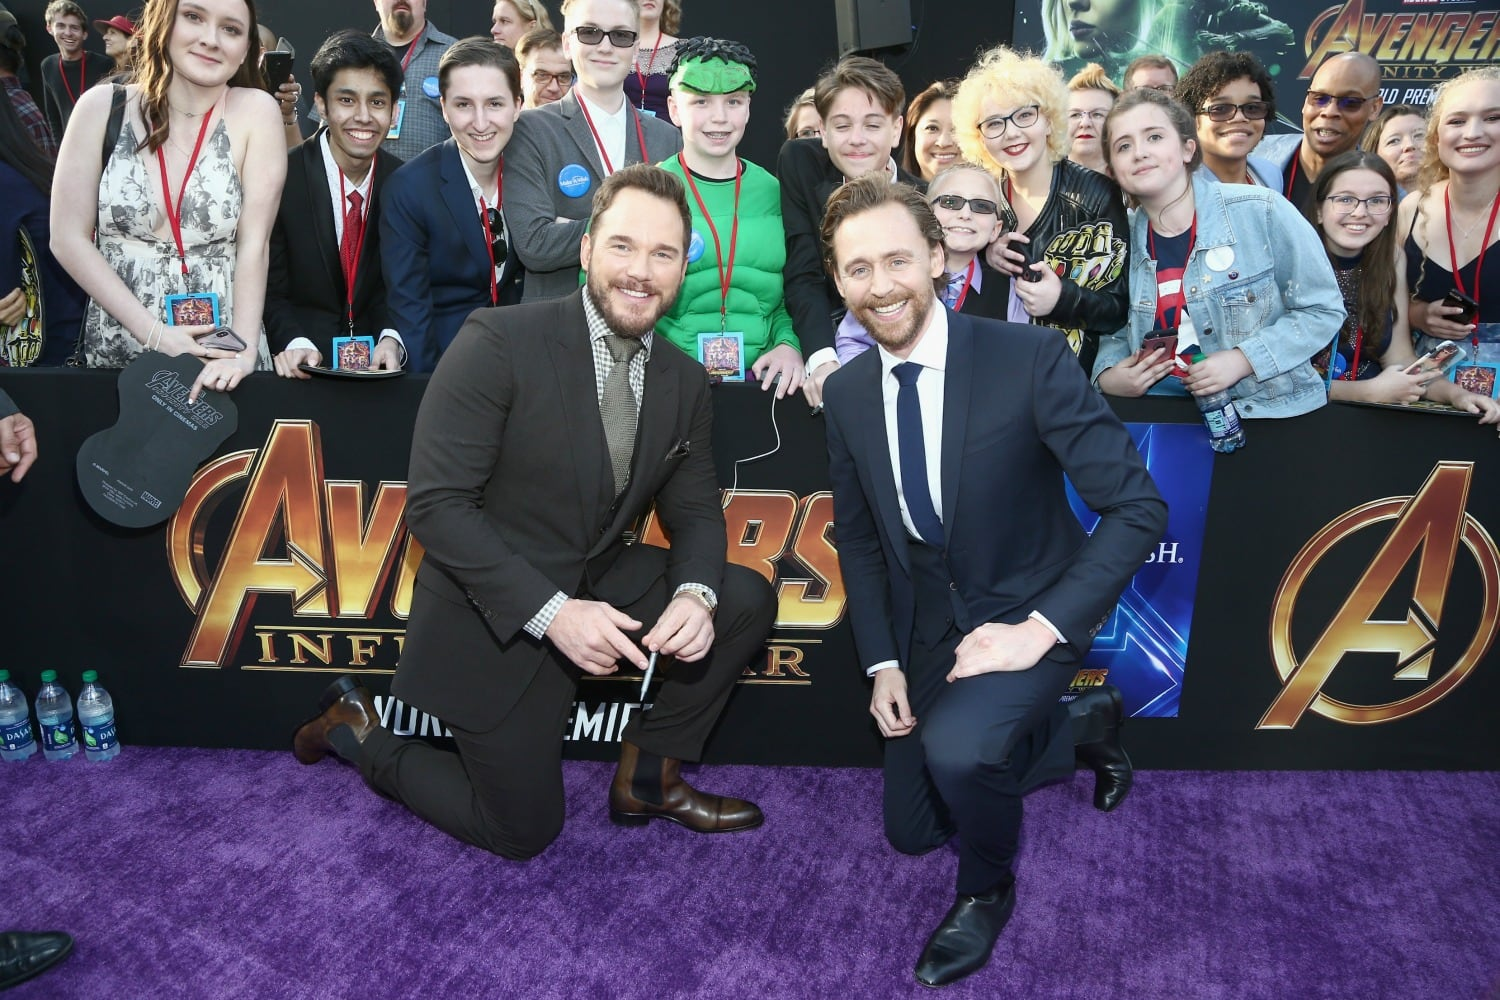 Chris Pratt and Tom Hiddleston at premiere